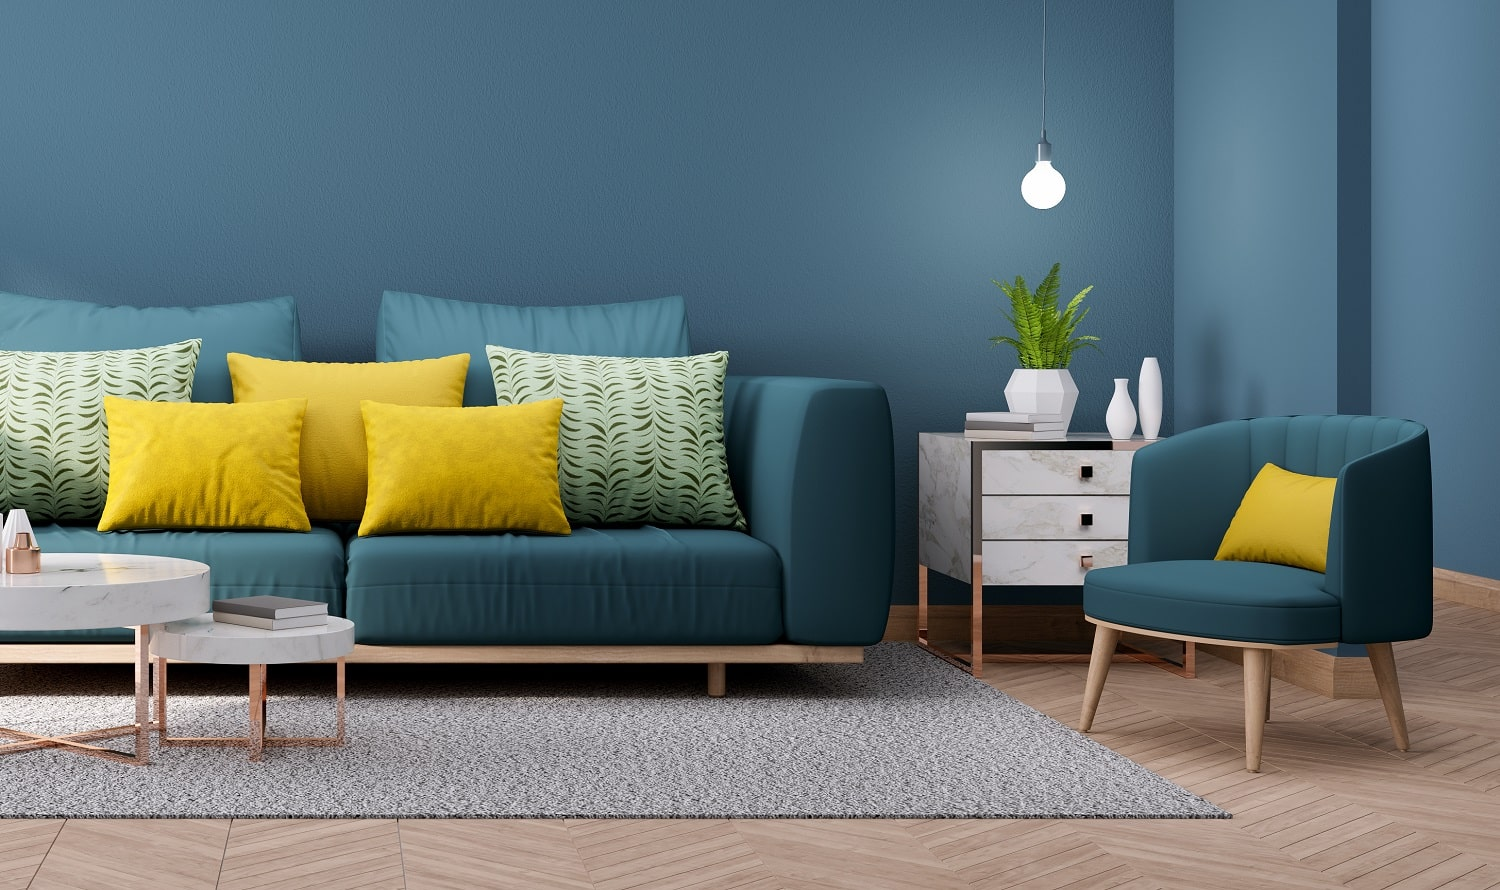 Modern Vintage interior of living room,,Blueprint home decor concept ,green couch with marble table on blue wall and Hardwood Flooring ,3d render